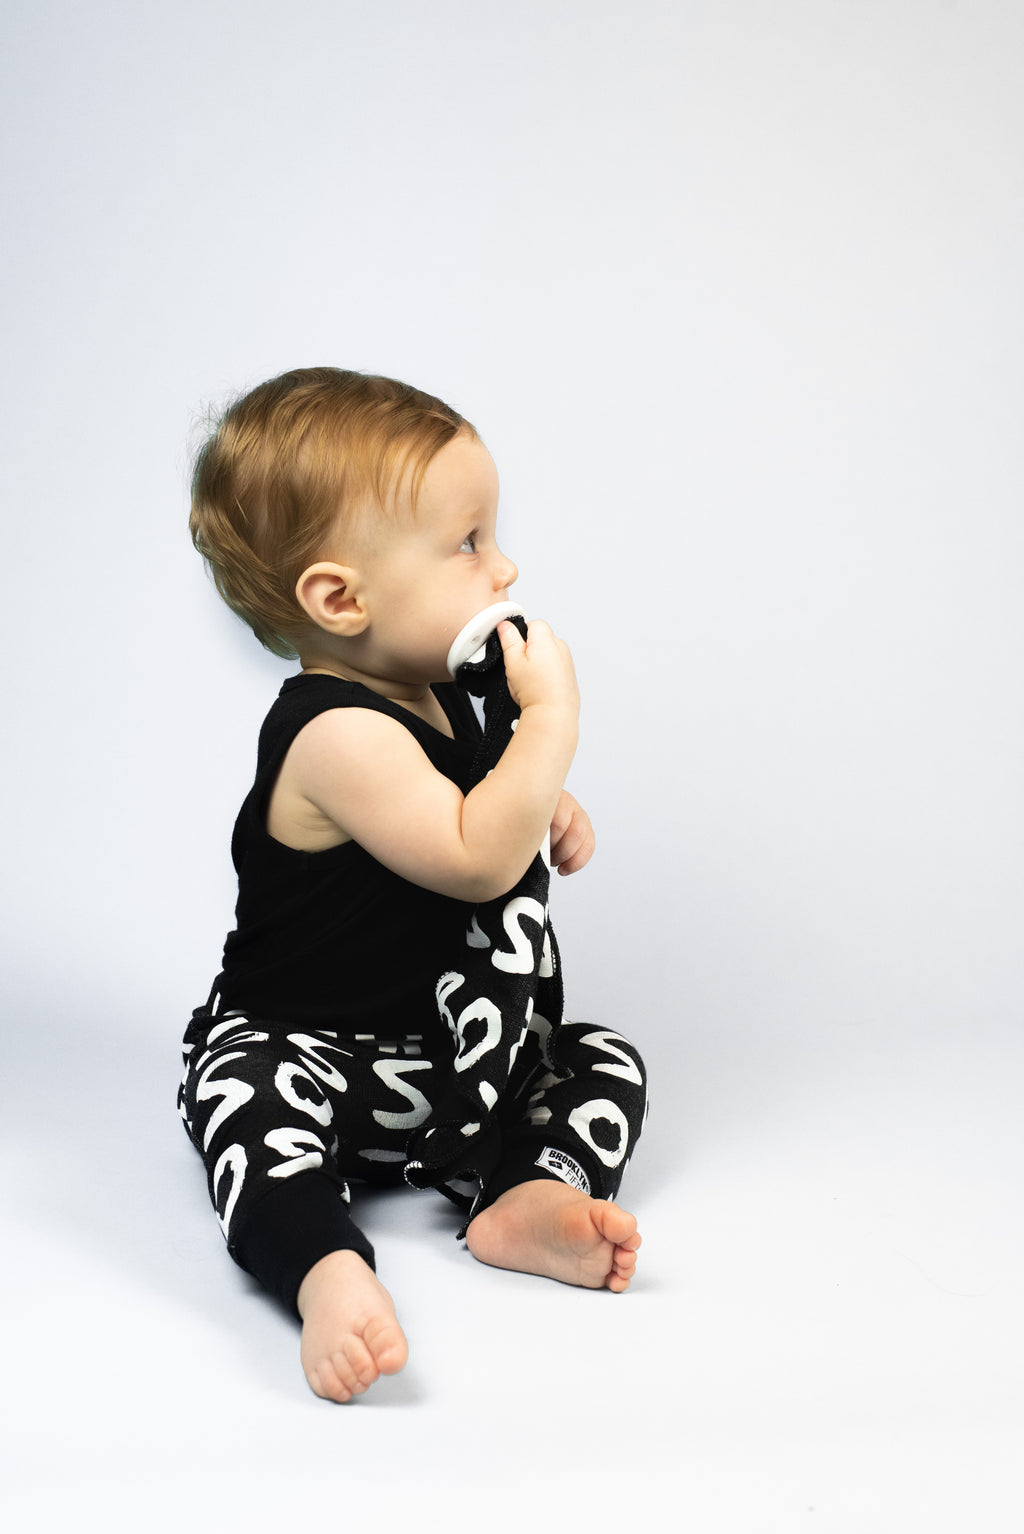 Brooklyn + Fifth Monochrome Collection, a gender neutral of collection of Infant Leggings featuring bold, fun Monochrome prints. Not only are they on trend with the minimalist, modern look, but strong black and white patterns can help babies to develop their ability to focus and concentrate.